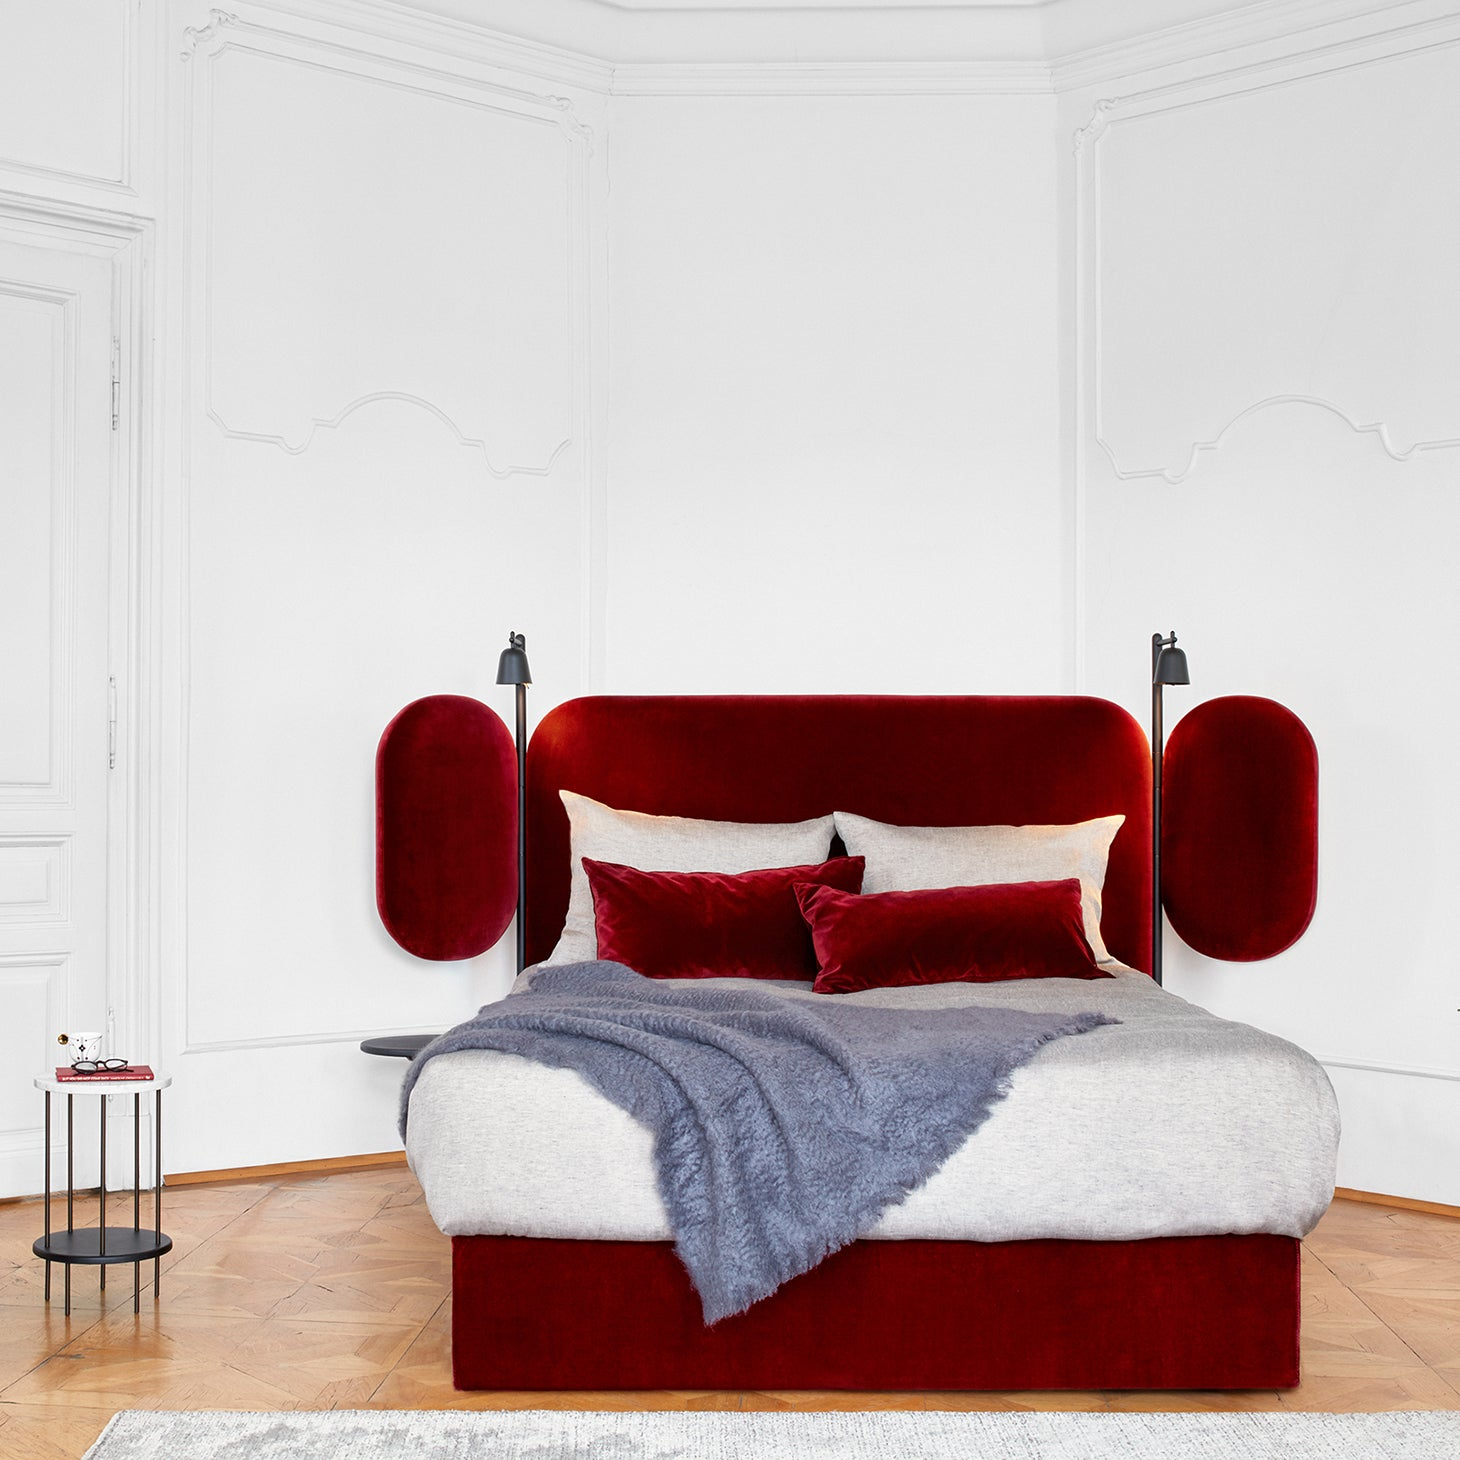 Wings Bed Beds Jaime Hayon Designer Furniture Sku: 758-110-10046